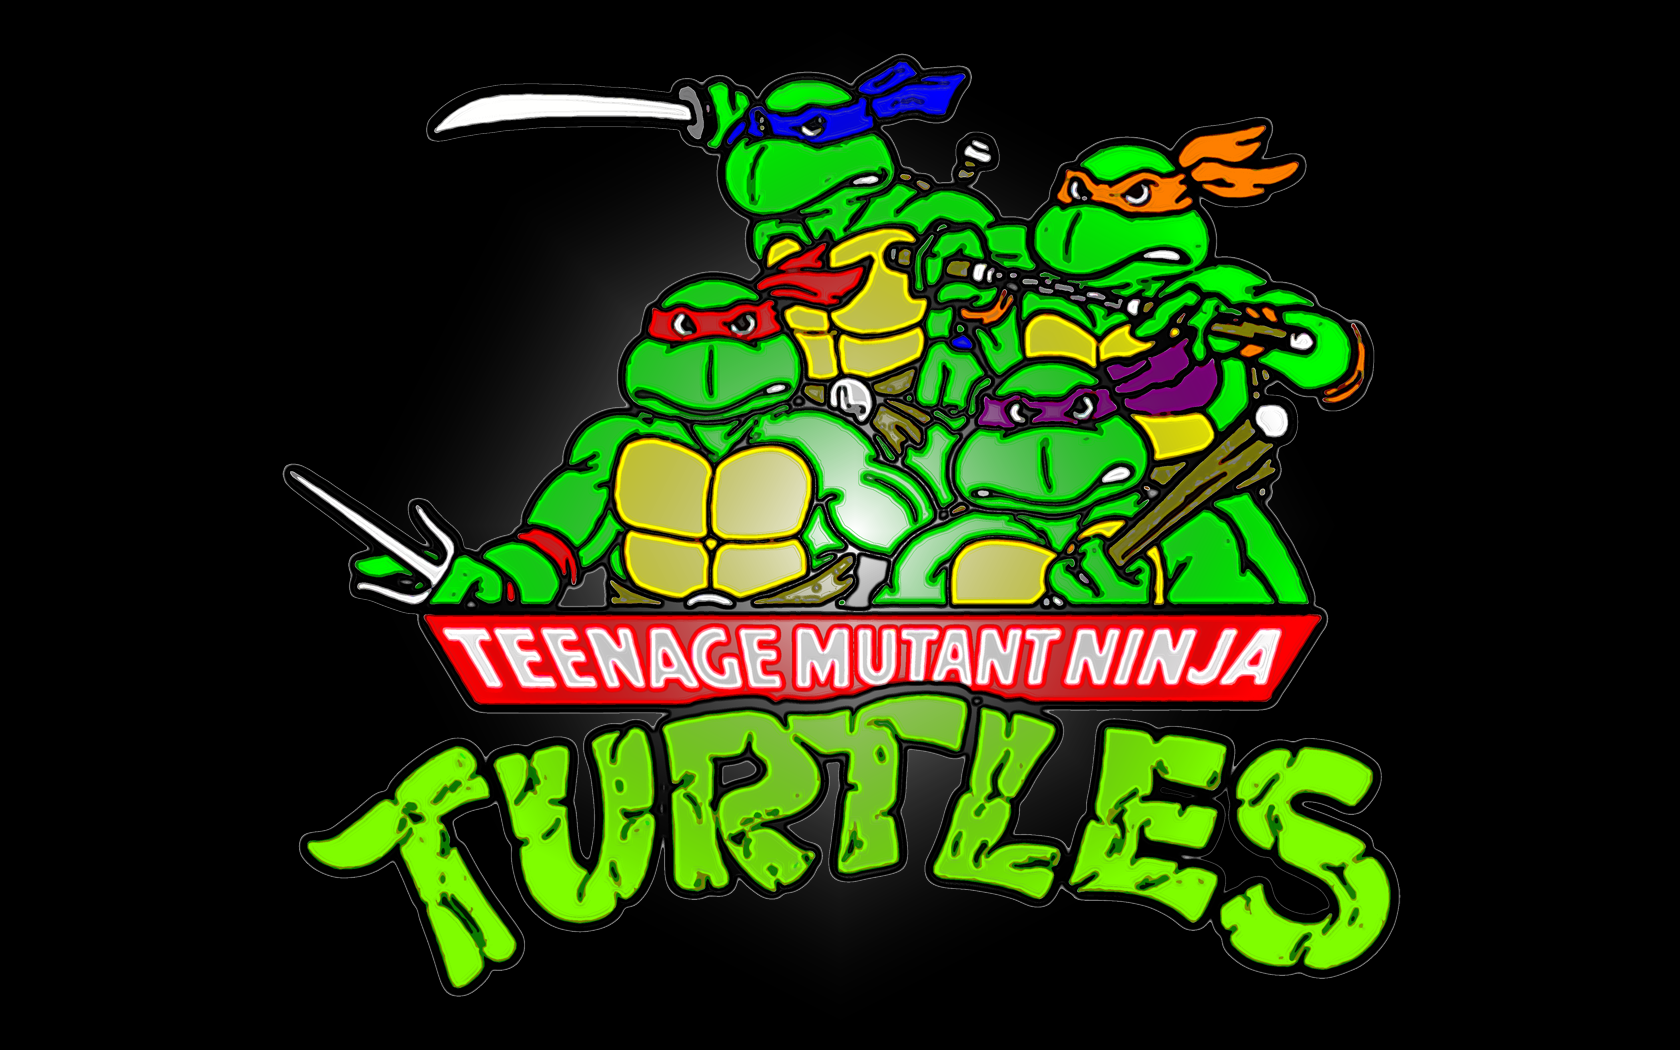 Ninja Turtles Collection: .NUDNUD Ninja Turtles Wallpapers